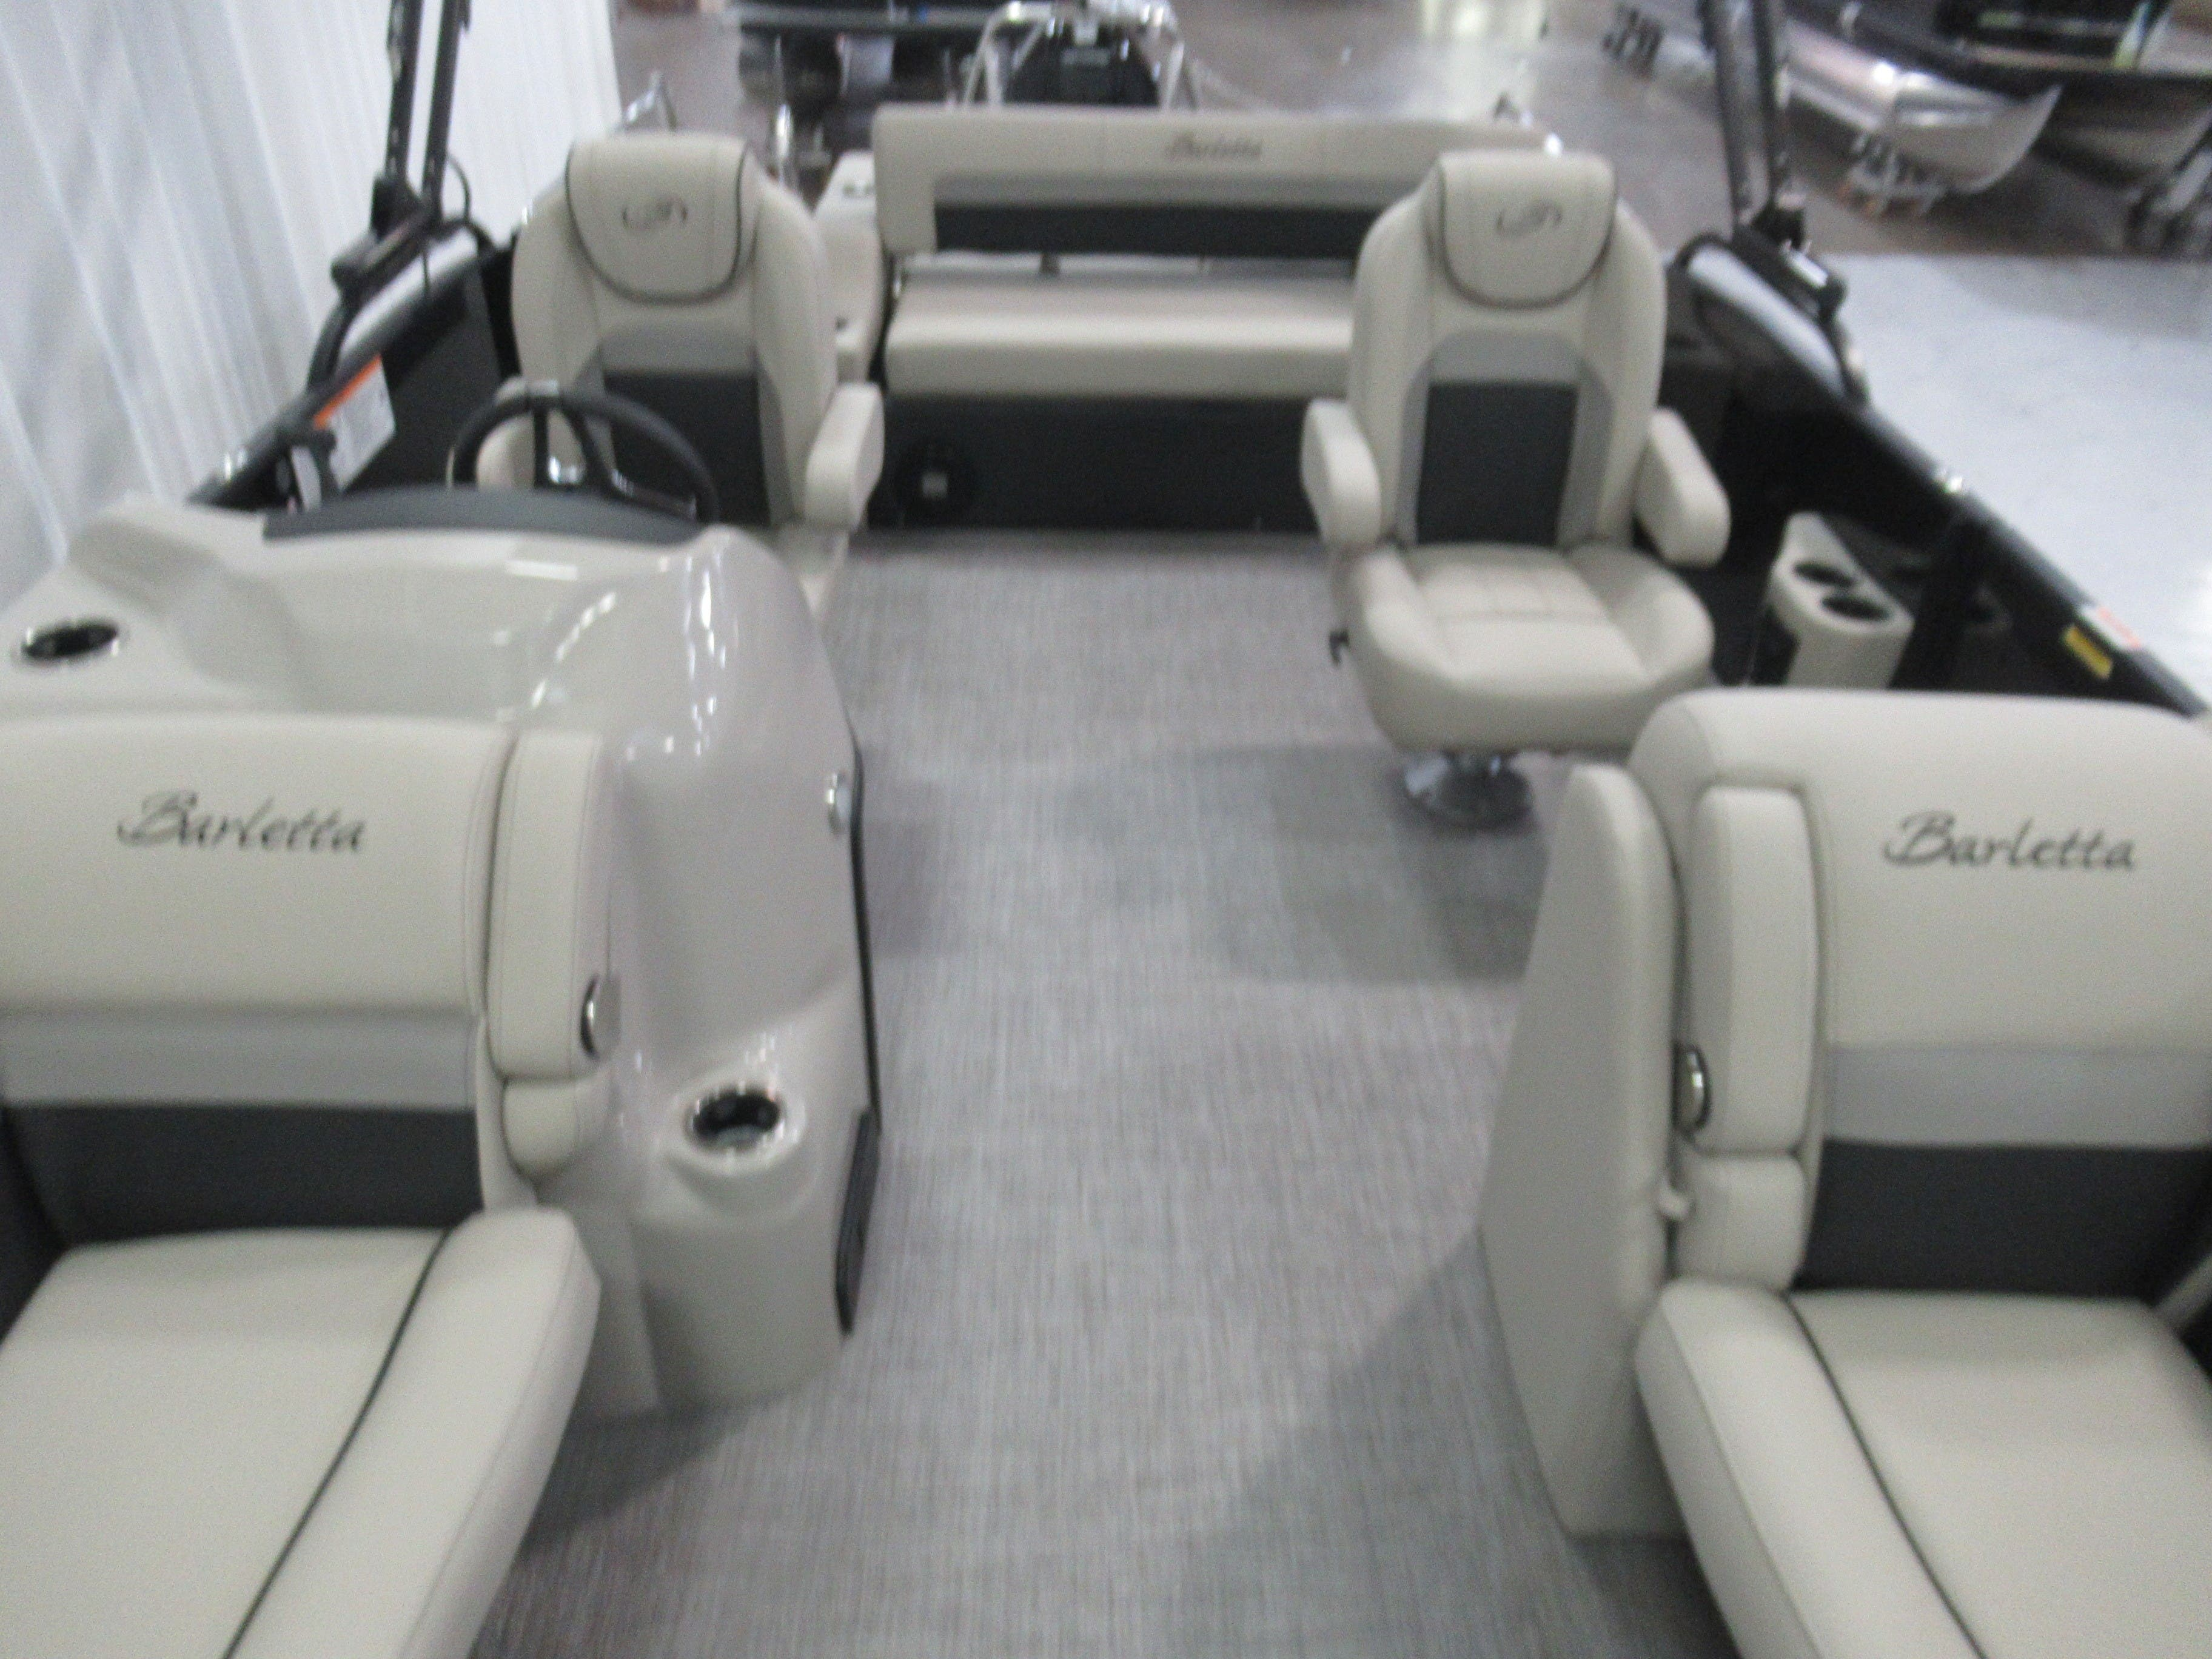 2021 Barletta boat for sale, model of the boat is C24uc & Image # 5 of 11